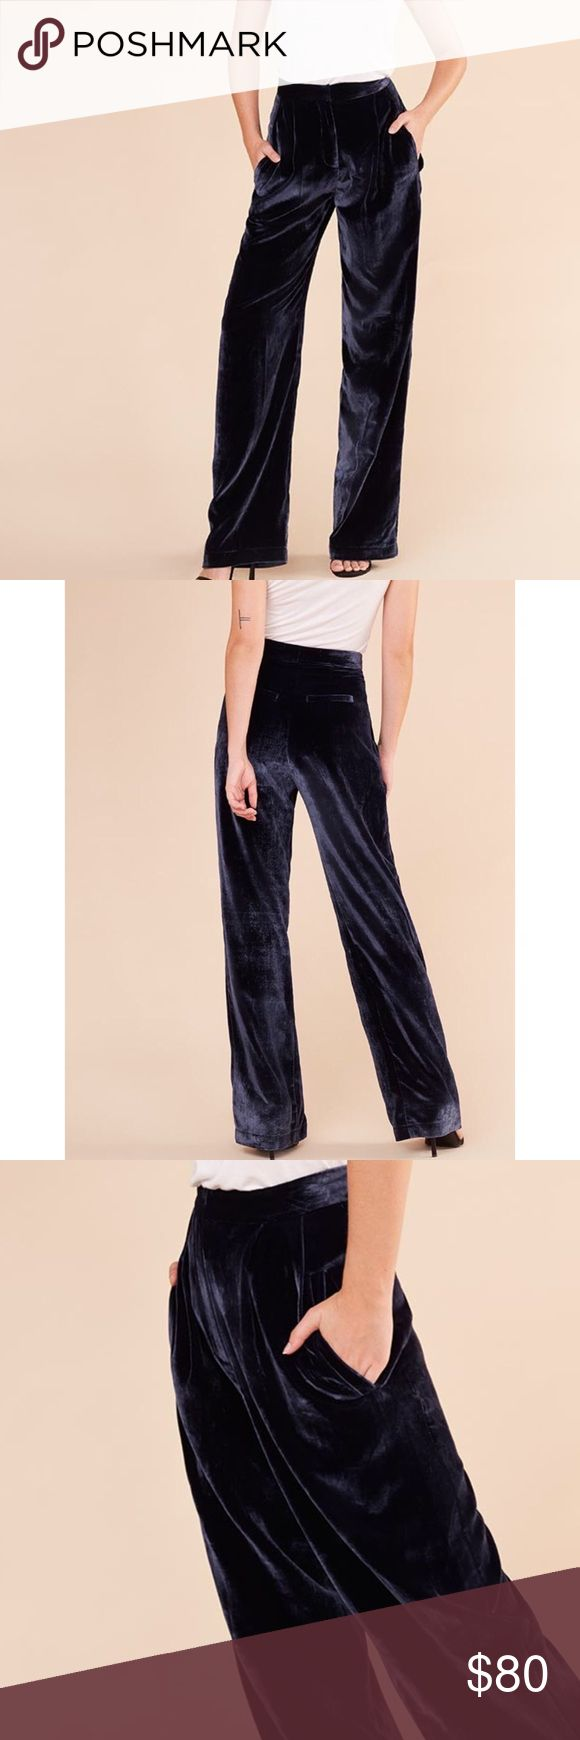 NEVER WORN Reformation Blue Velvet 'Jones Pant' BLUE | VELVET | SIZE 4 (+) | HIGH-WAISTED | WIDE LEG | TROUSERS | BUTTON + ZIPPER || These are BRAND NEW pants from The Reformation that have NEVER BEEN WORN bc they were too big for me, & I was out of town when they arrived (missed returns deadline). They're super chic & comfy, & I would say they'd work on a true 4 if you want added flexibility, or a small 6, if you don't care. These can be dressed up or down, but definitely require heels or…